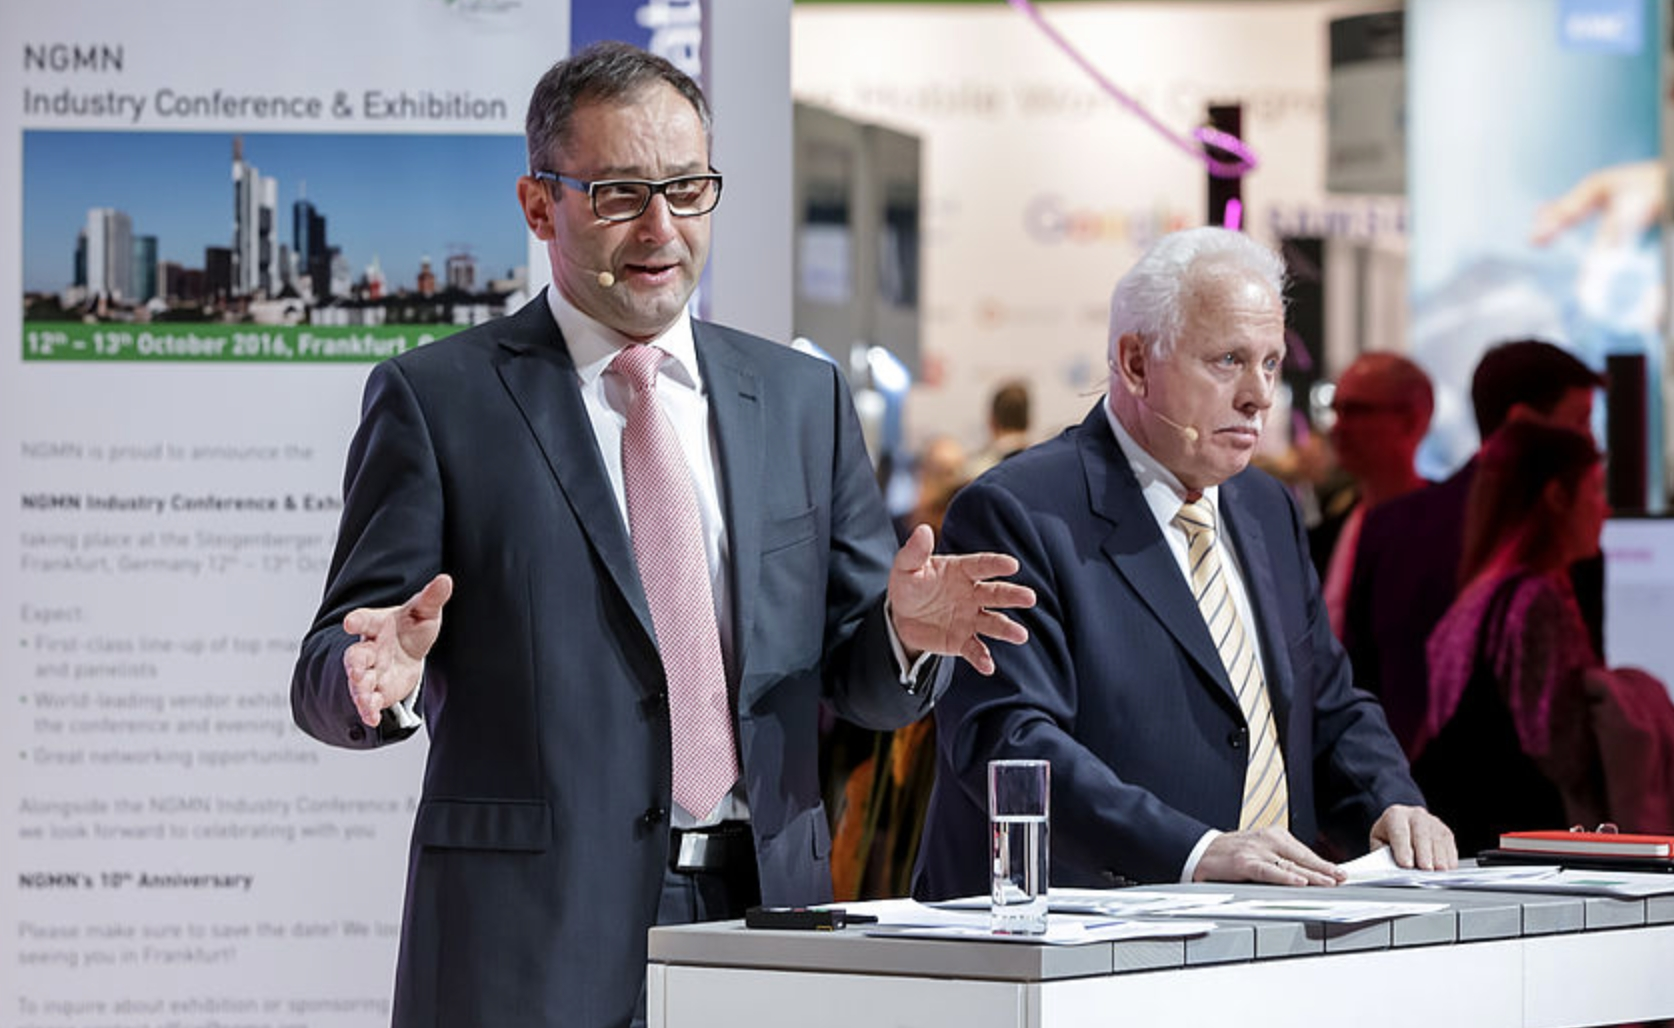 Il Chairman NGMN Bruno Jacobfeuerborn e il CEO NGMN Peter Meissner